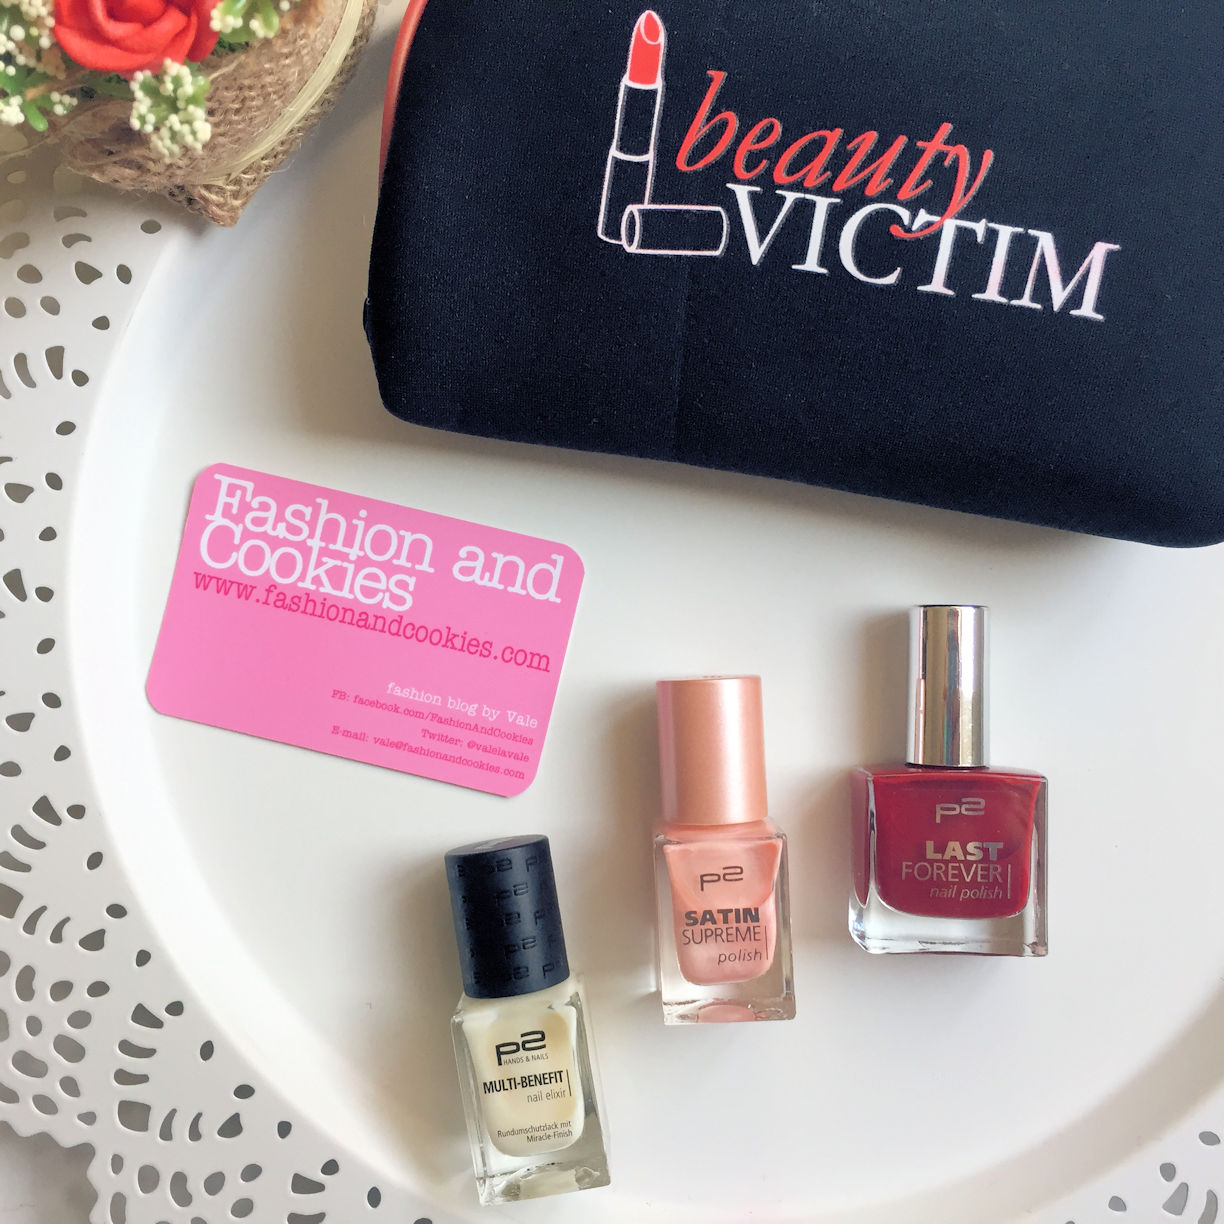 p2 cosmetics Nails & Hands smalti di qualità low cost on Fashion and Cookies beauty blog, beauty blogger